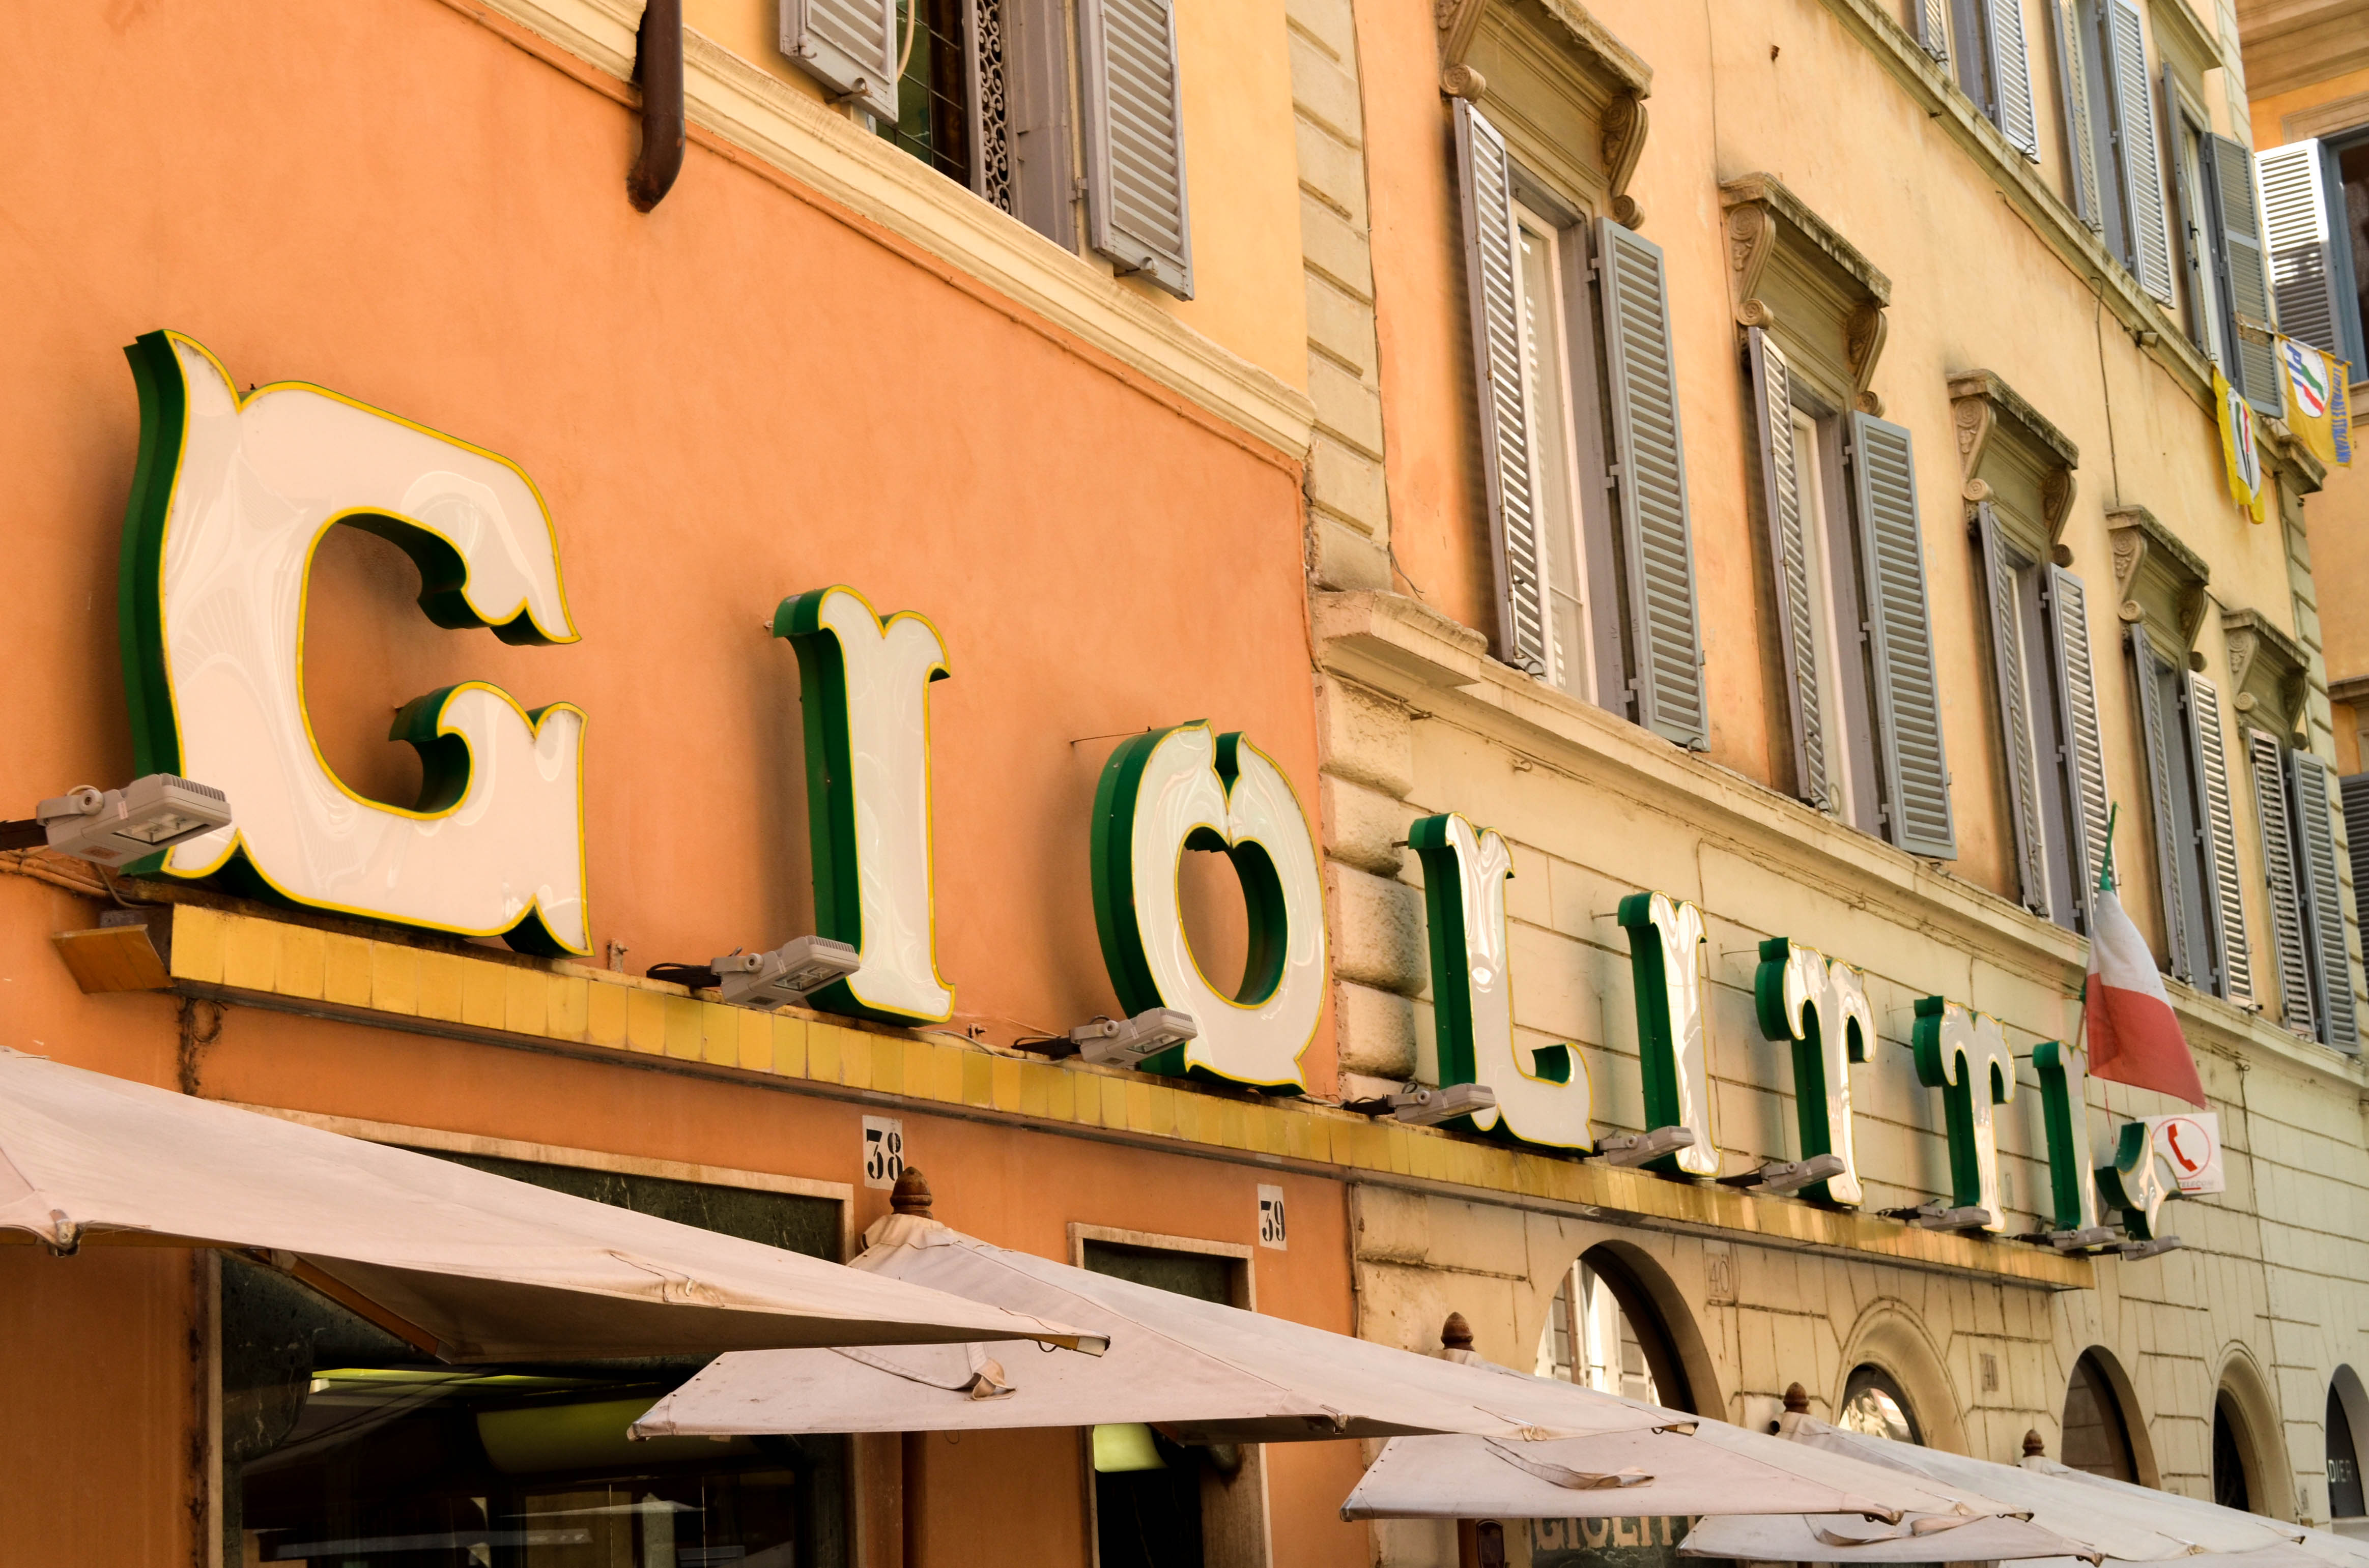 The oldest gelato in Rome, Giolitti